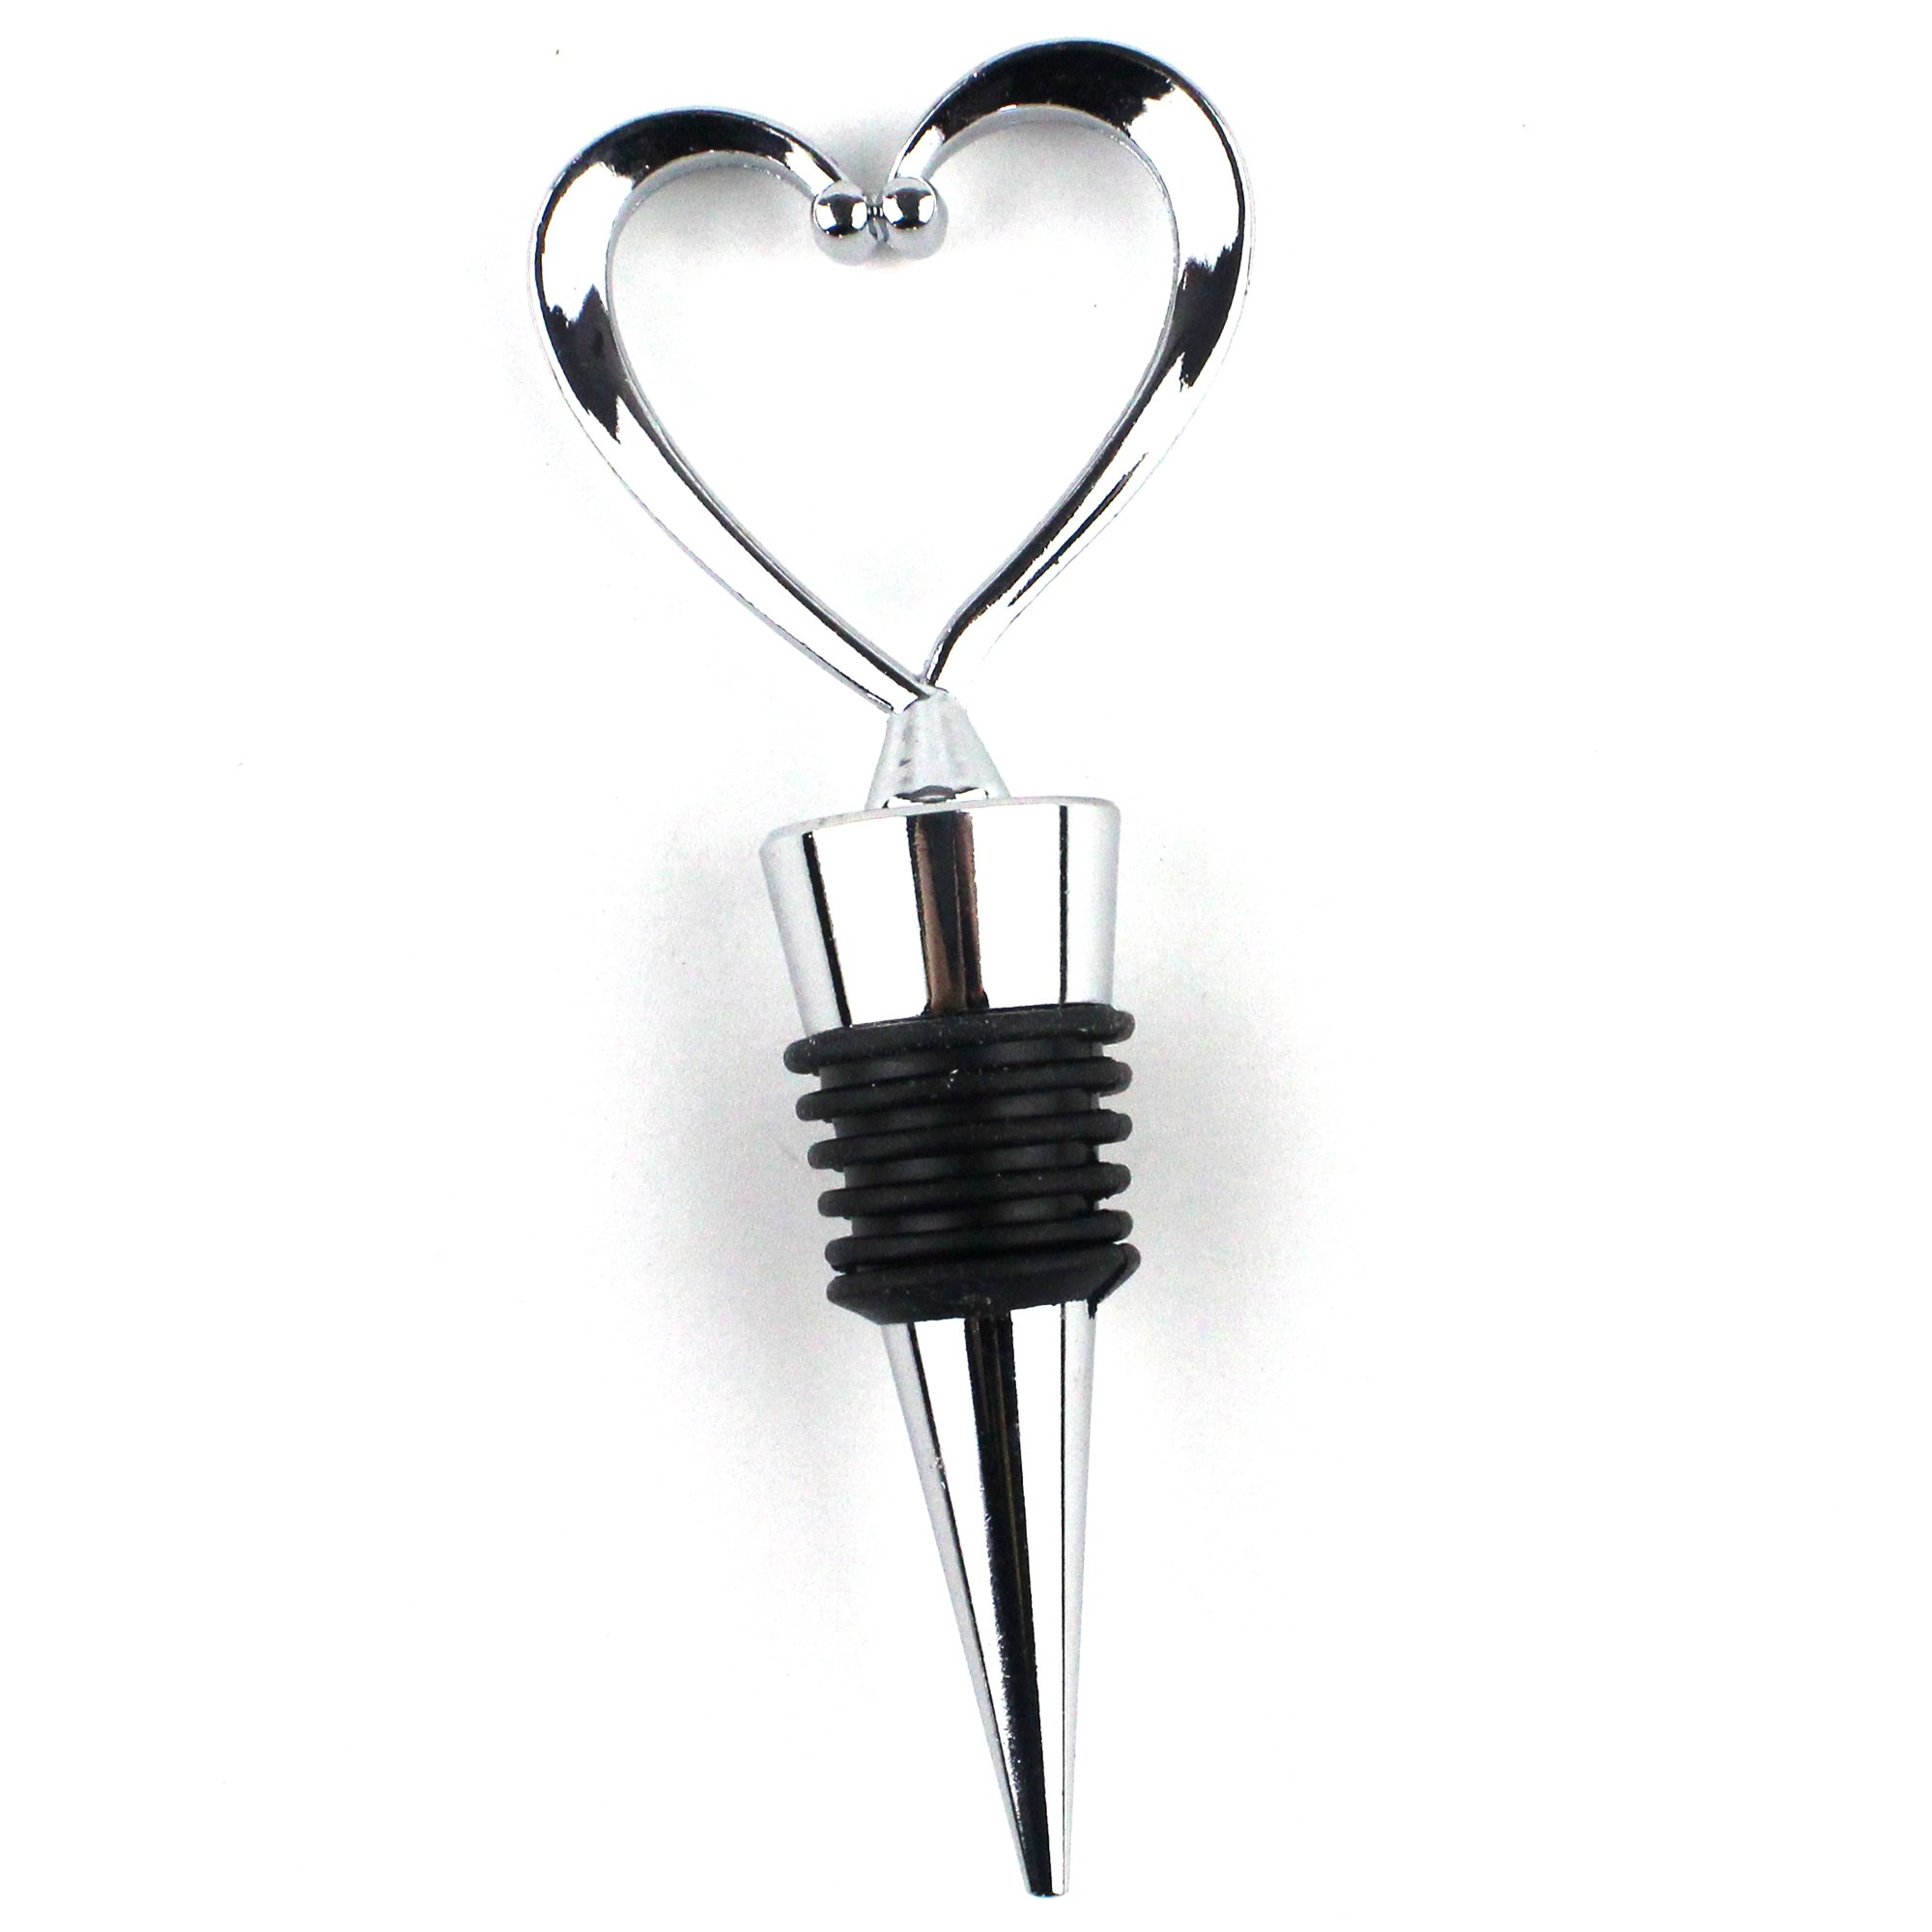 Lovelyou OTHER 11 Stainless Steel Love Design Heart Shape Wine and Beverage Bottle Stoppers (3) by Lovelyou (Image #1)